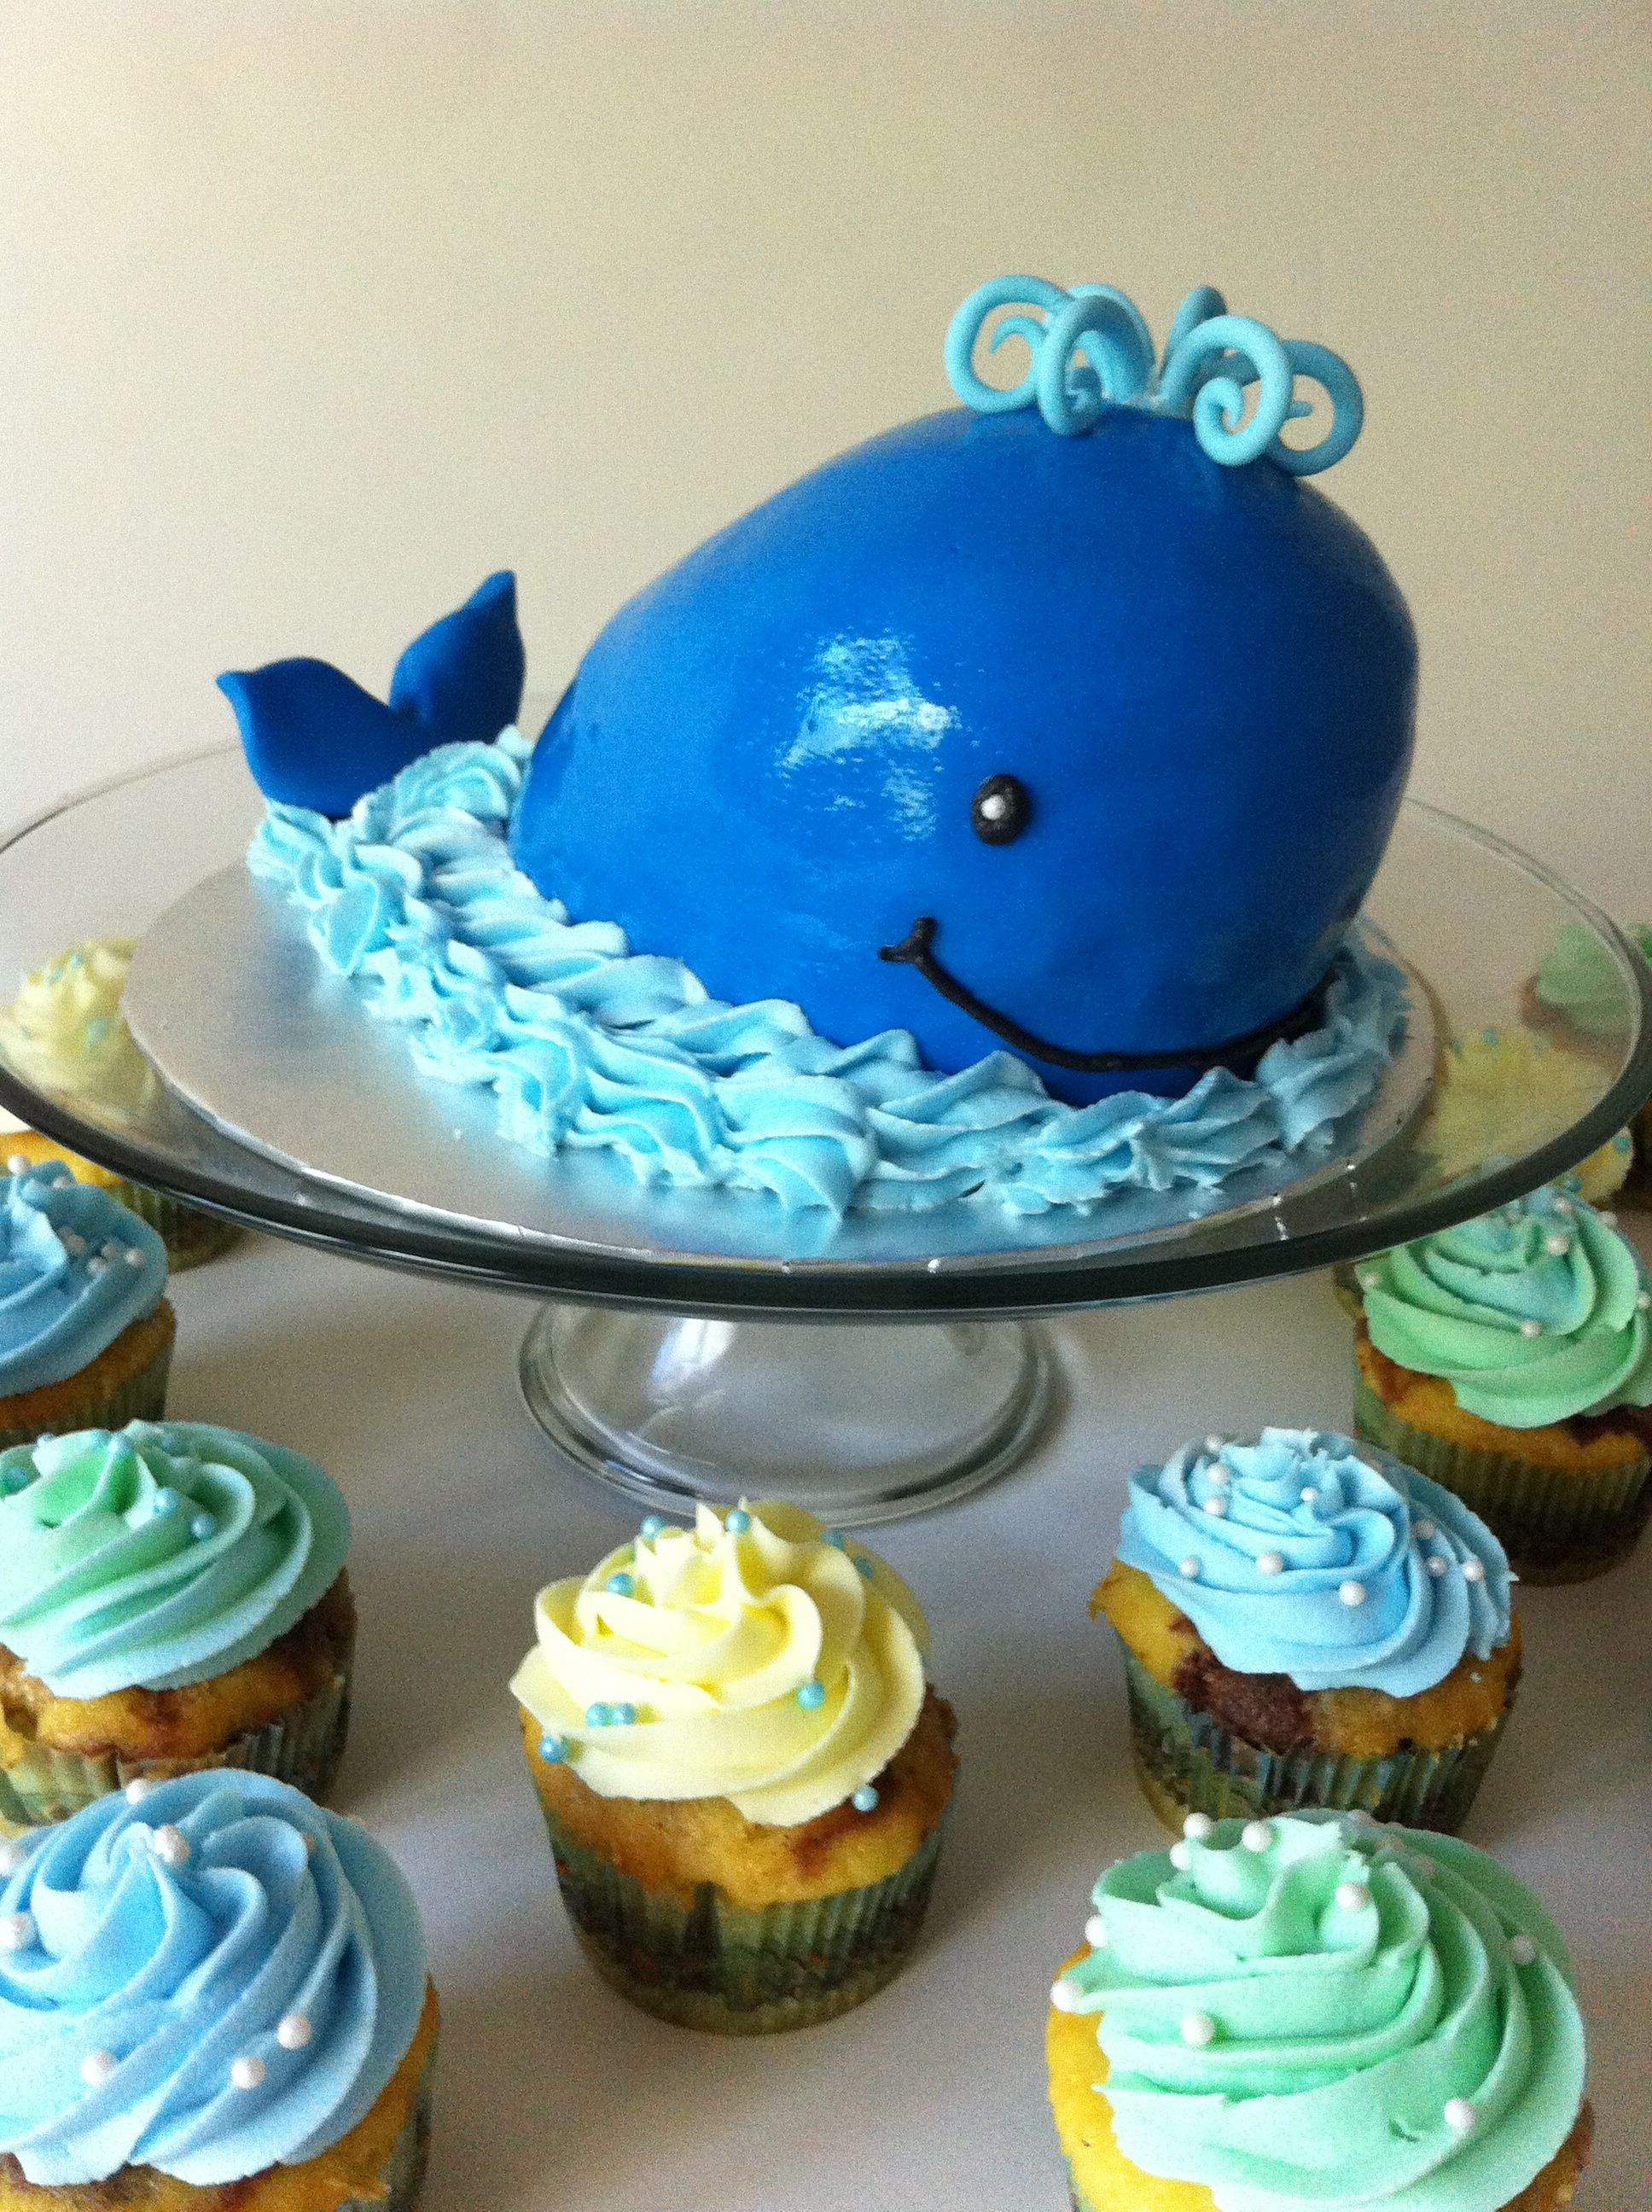 Going to make this for my daughters birthday Pink whale instead